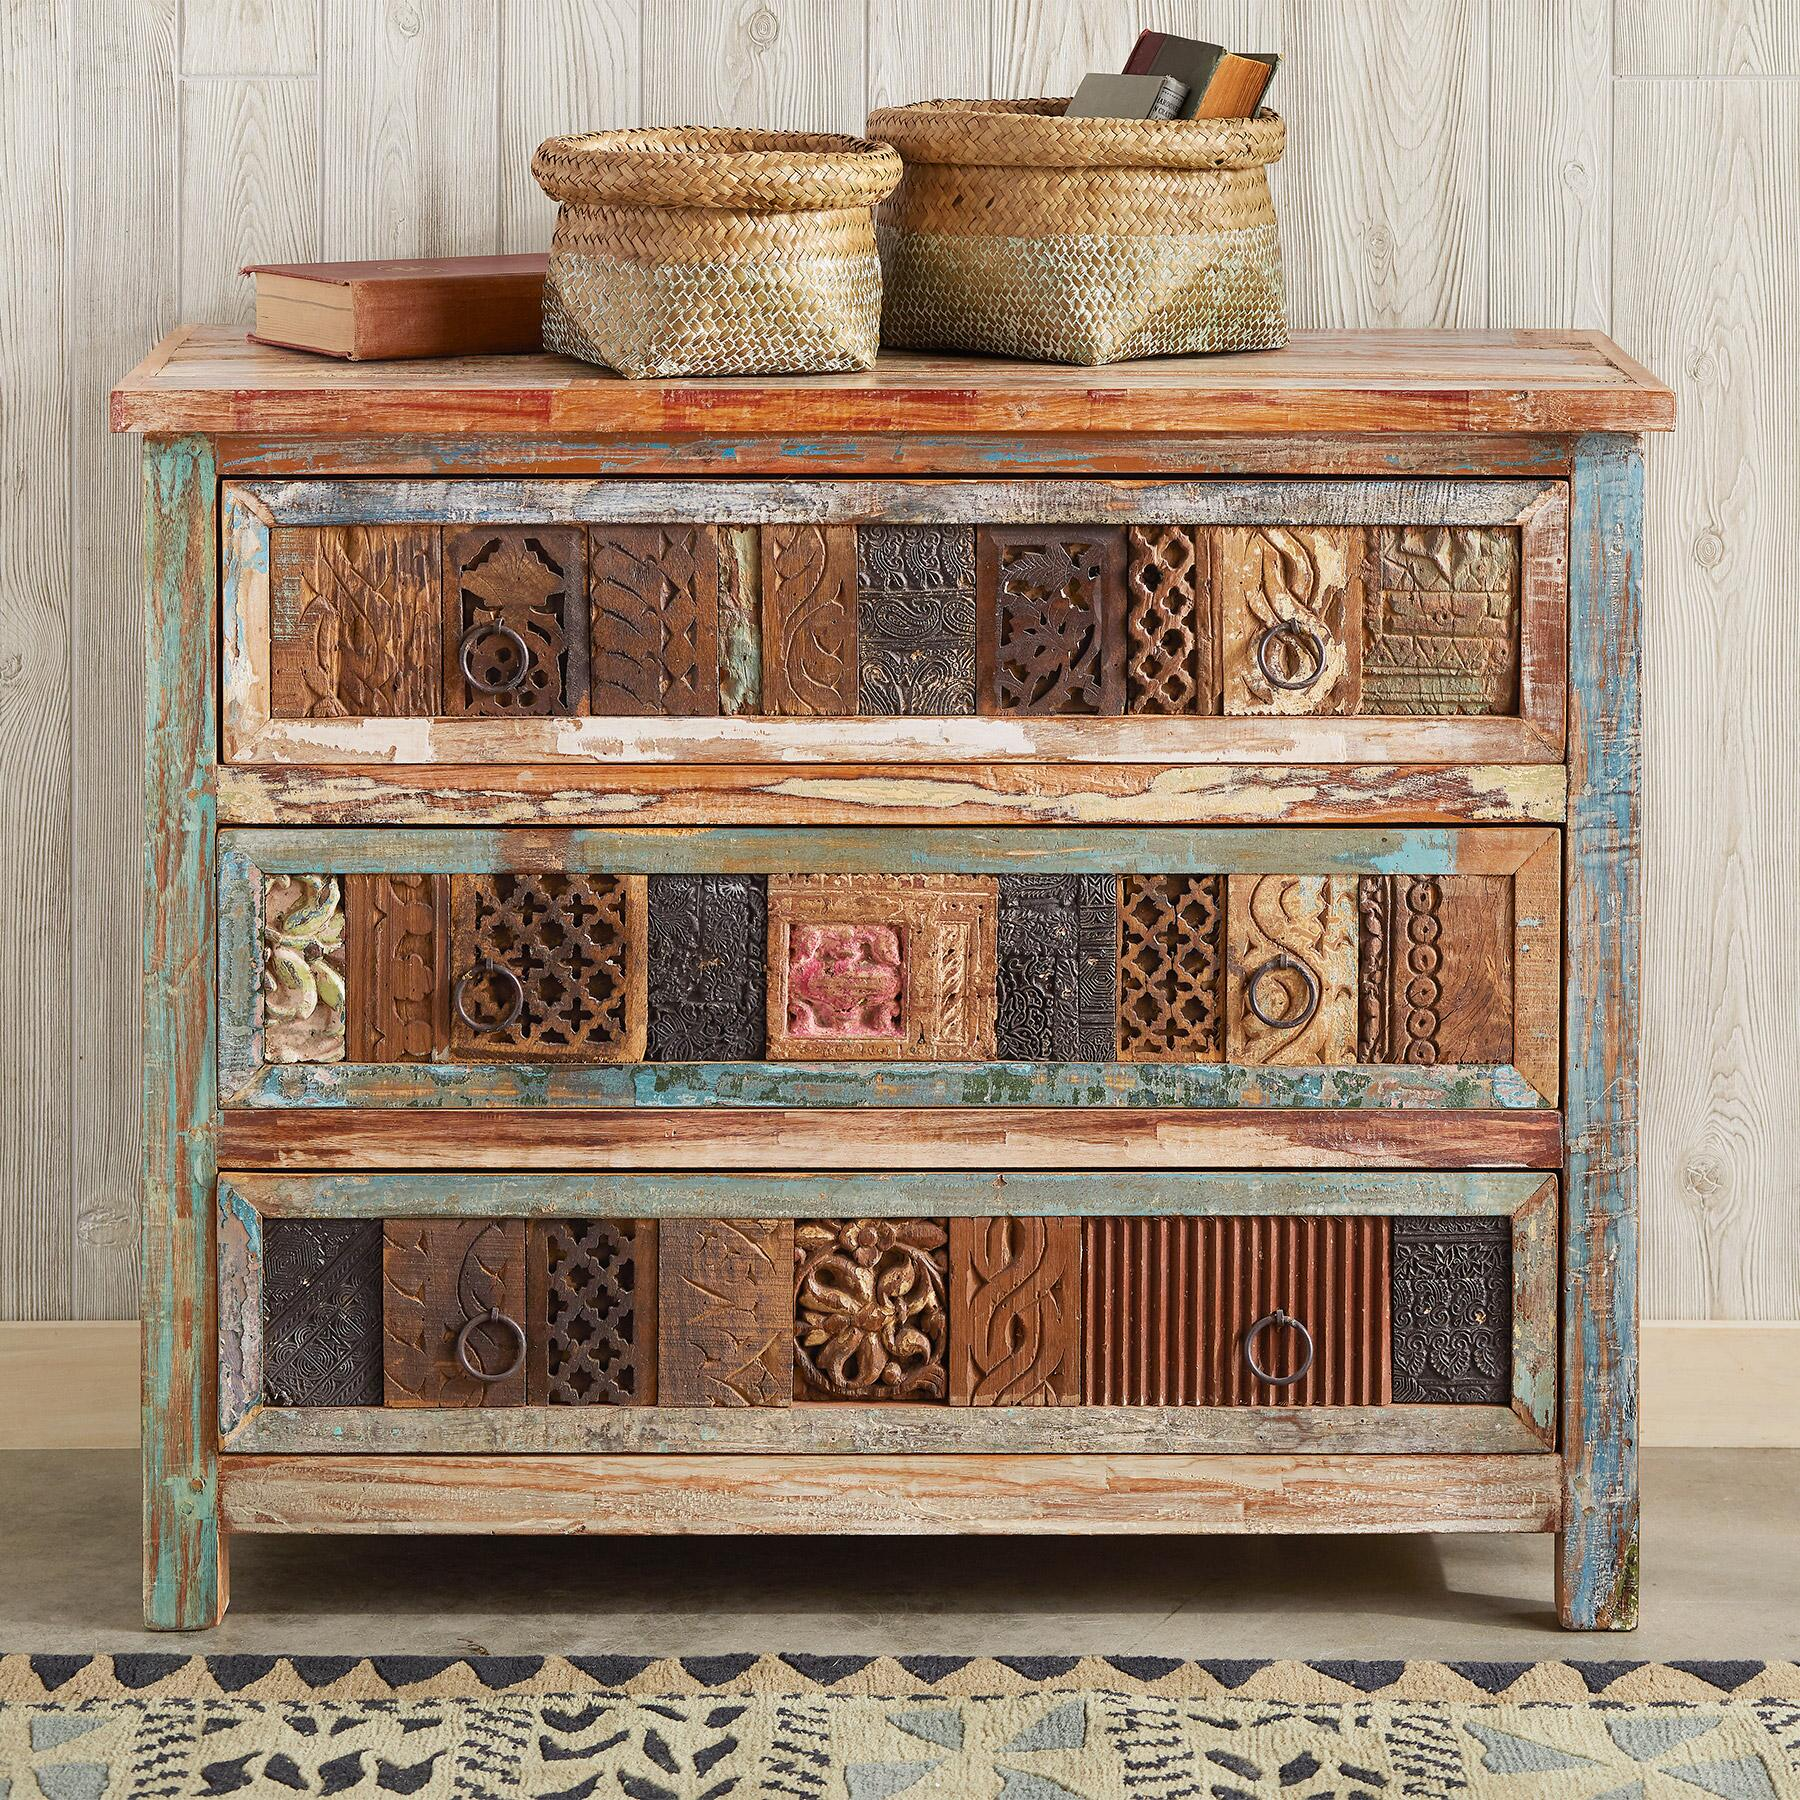 Collector's chest - Sundance Catalog Home Decor + A Few of My Artisan Favorite Things!